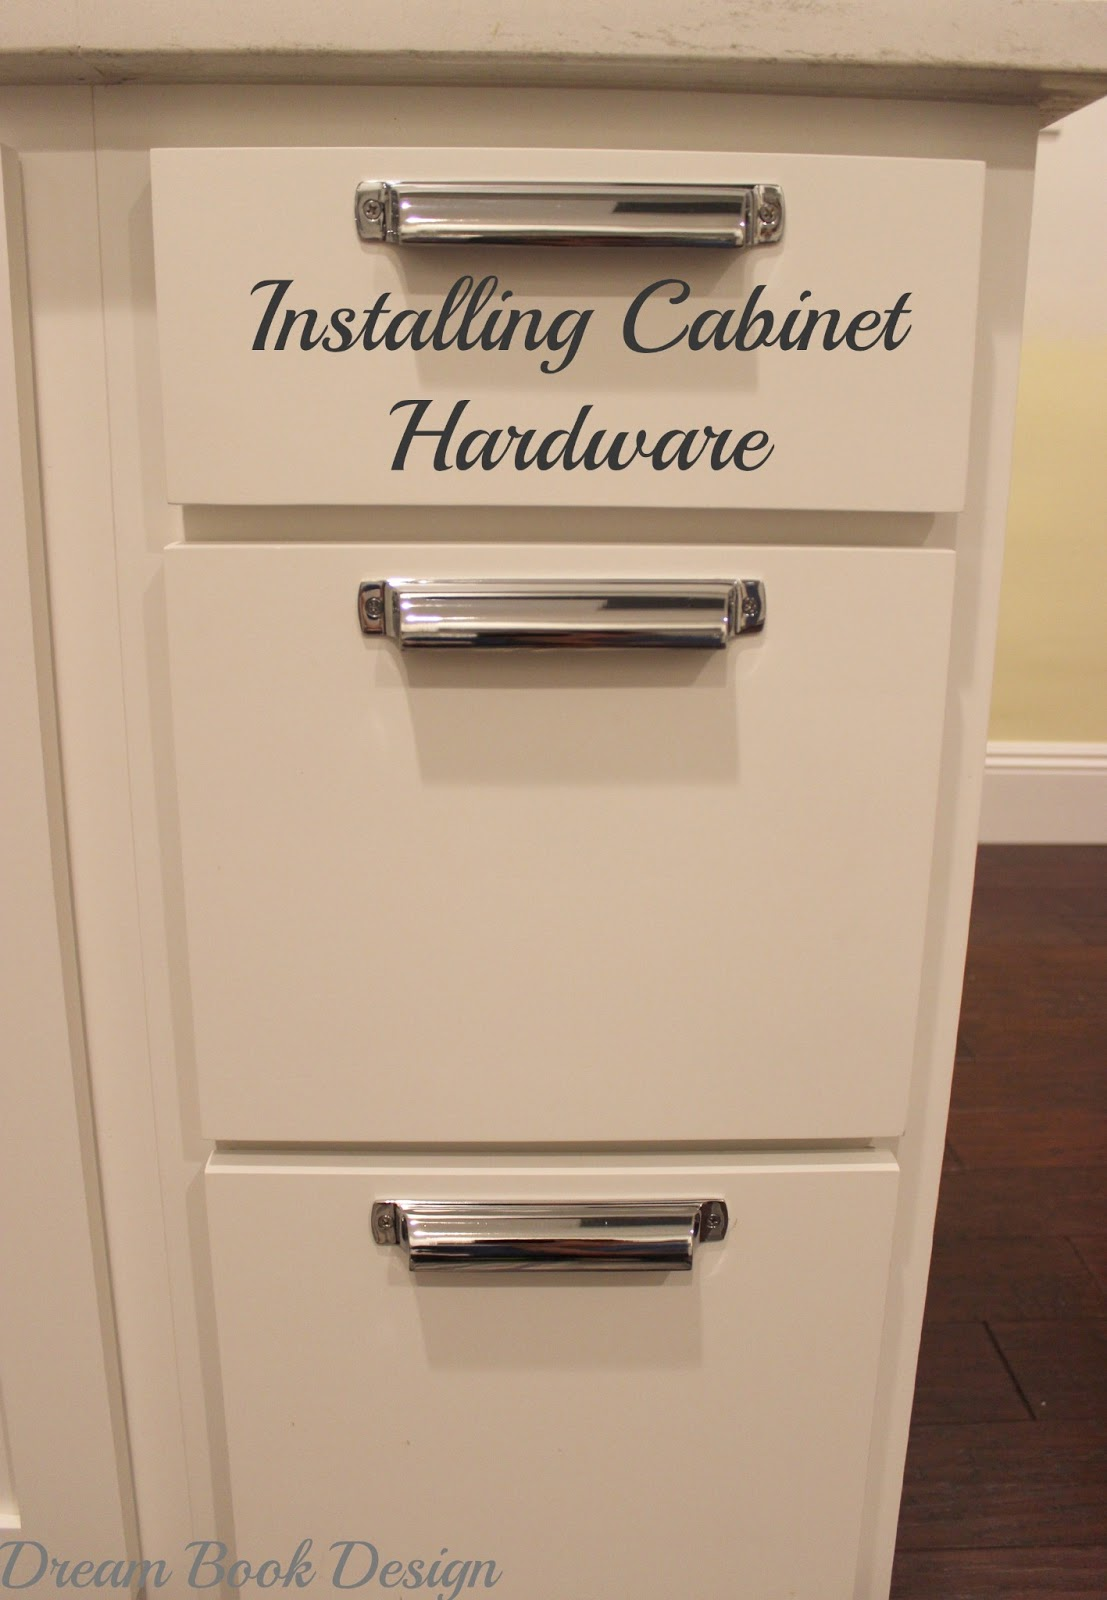 how to install kitchen cabinet hardware tutorial kitchen cabinet hardware How To Install Kitchen Cabinet Hardware Tutorial